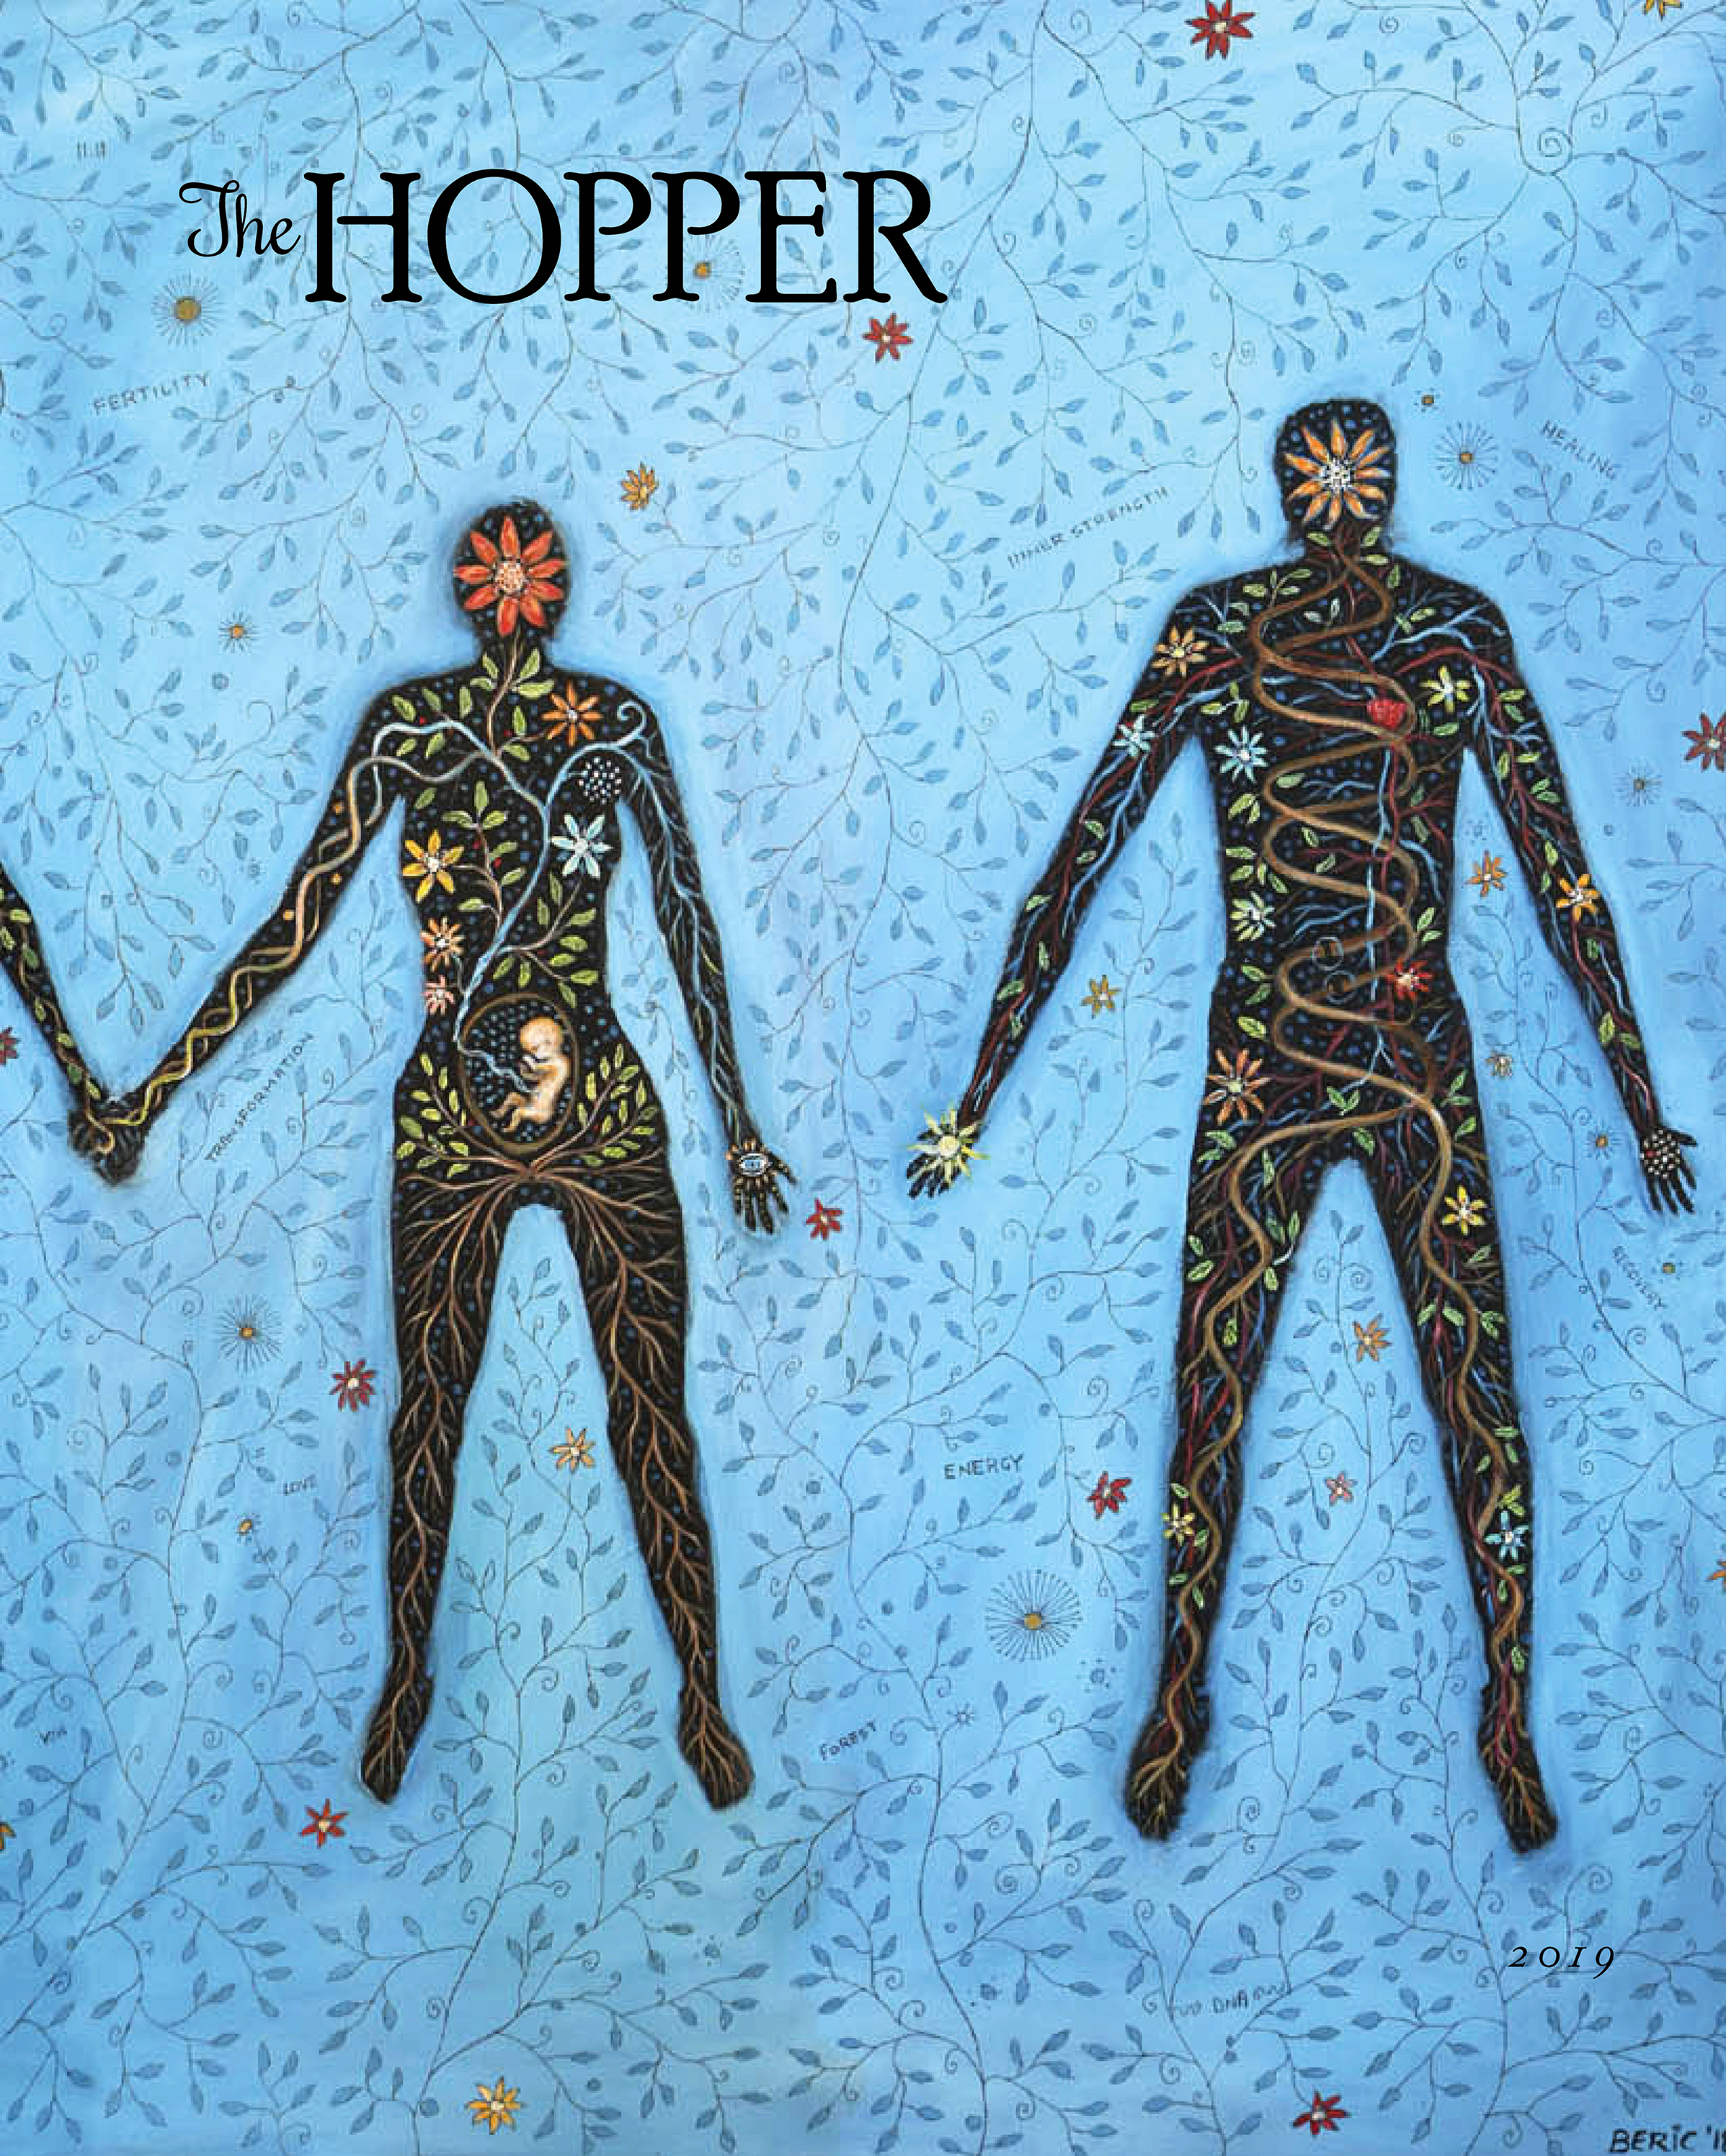 The Hopper, Issue 4